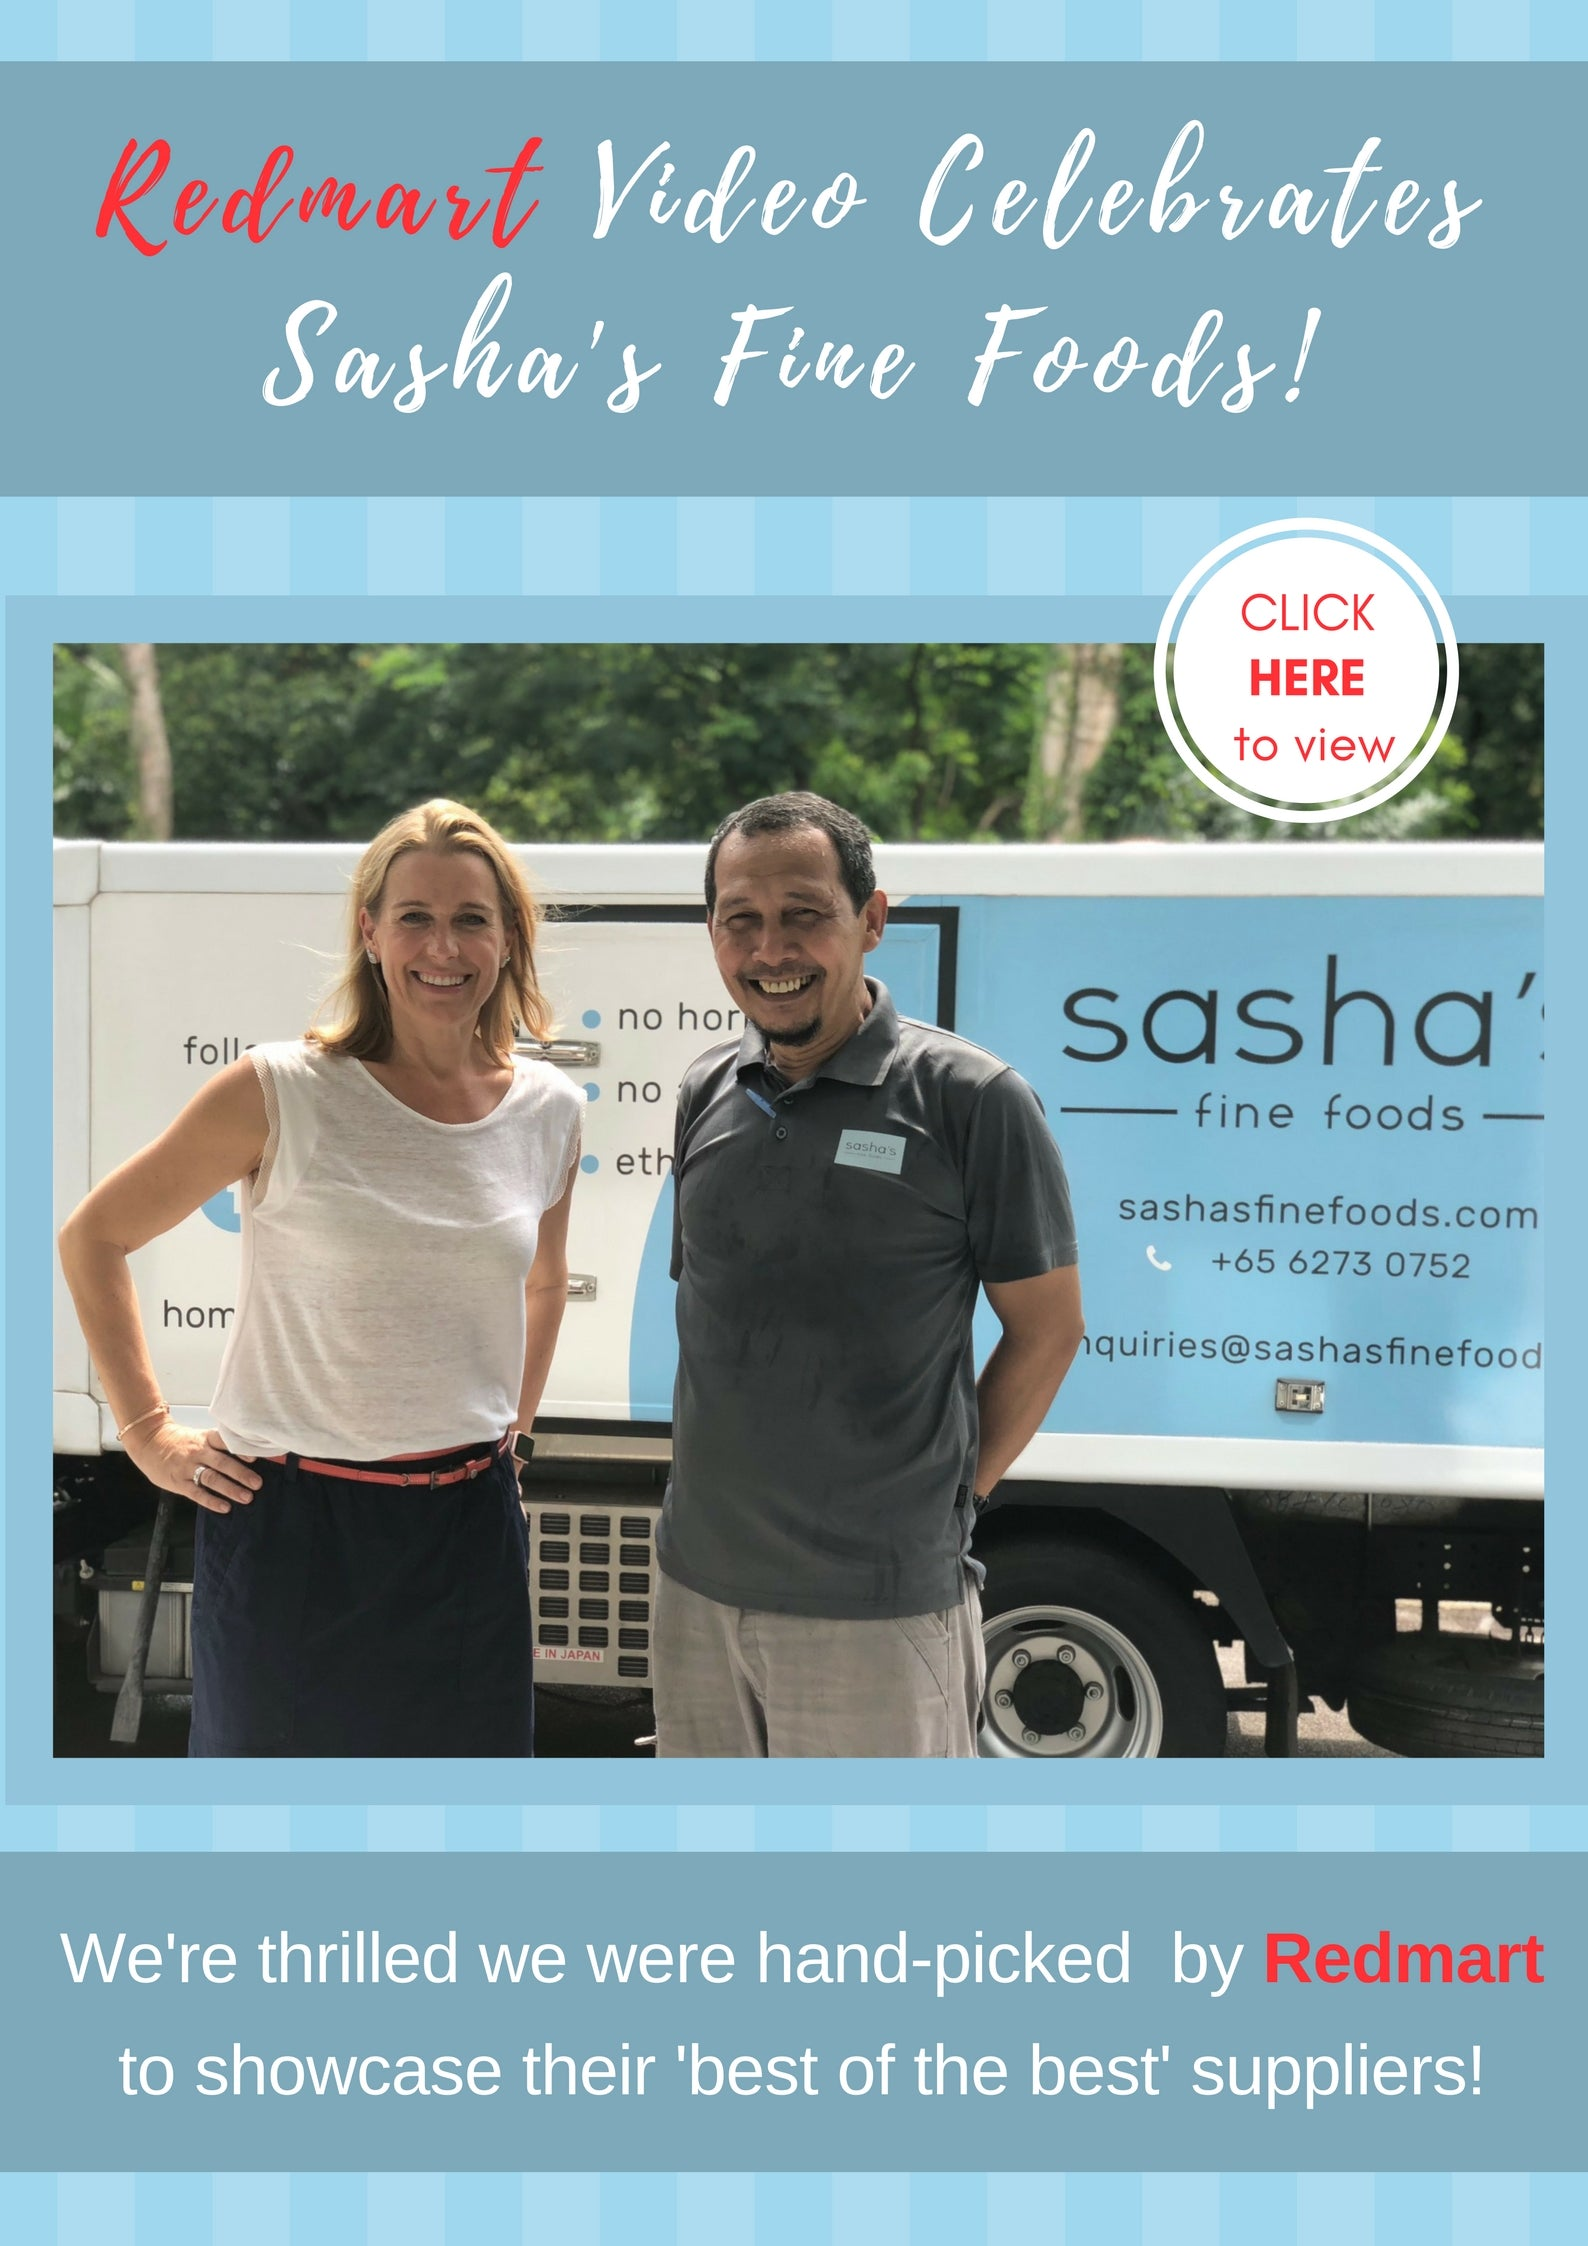 Enjoy Redmart's Video, Celebrating Sasha's Fine Foods - Click Link Below Image